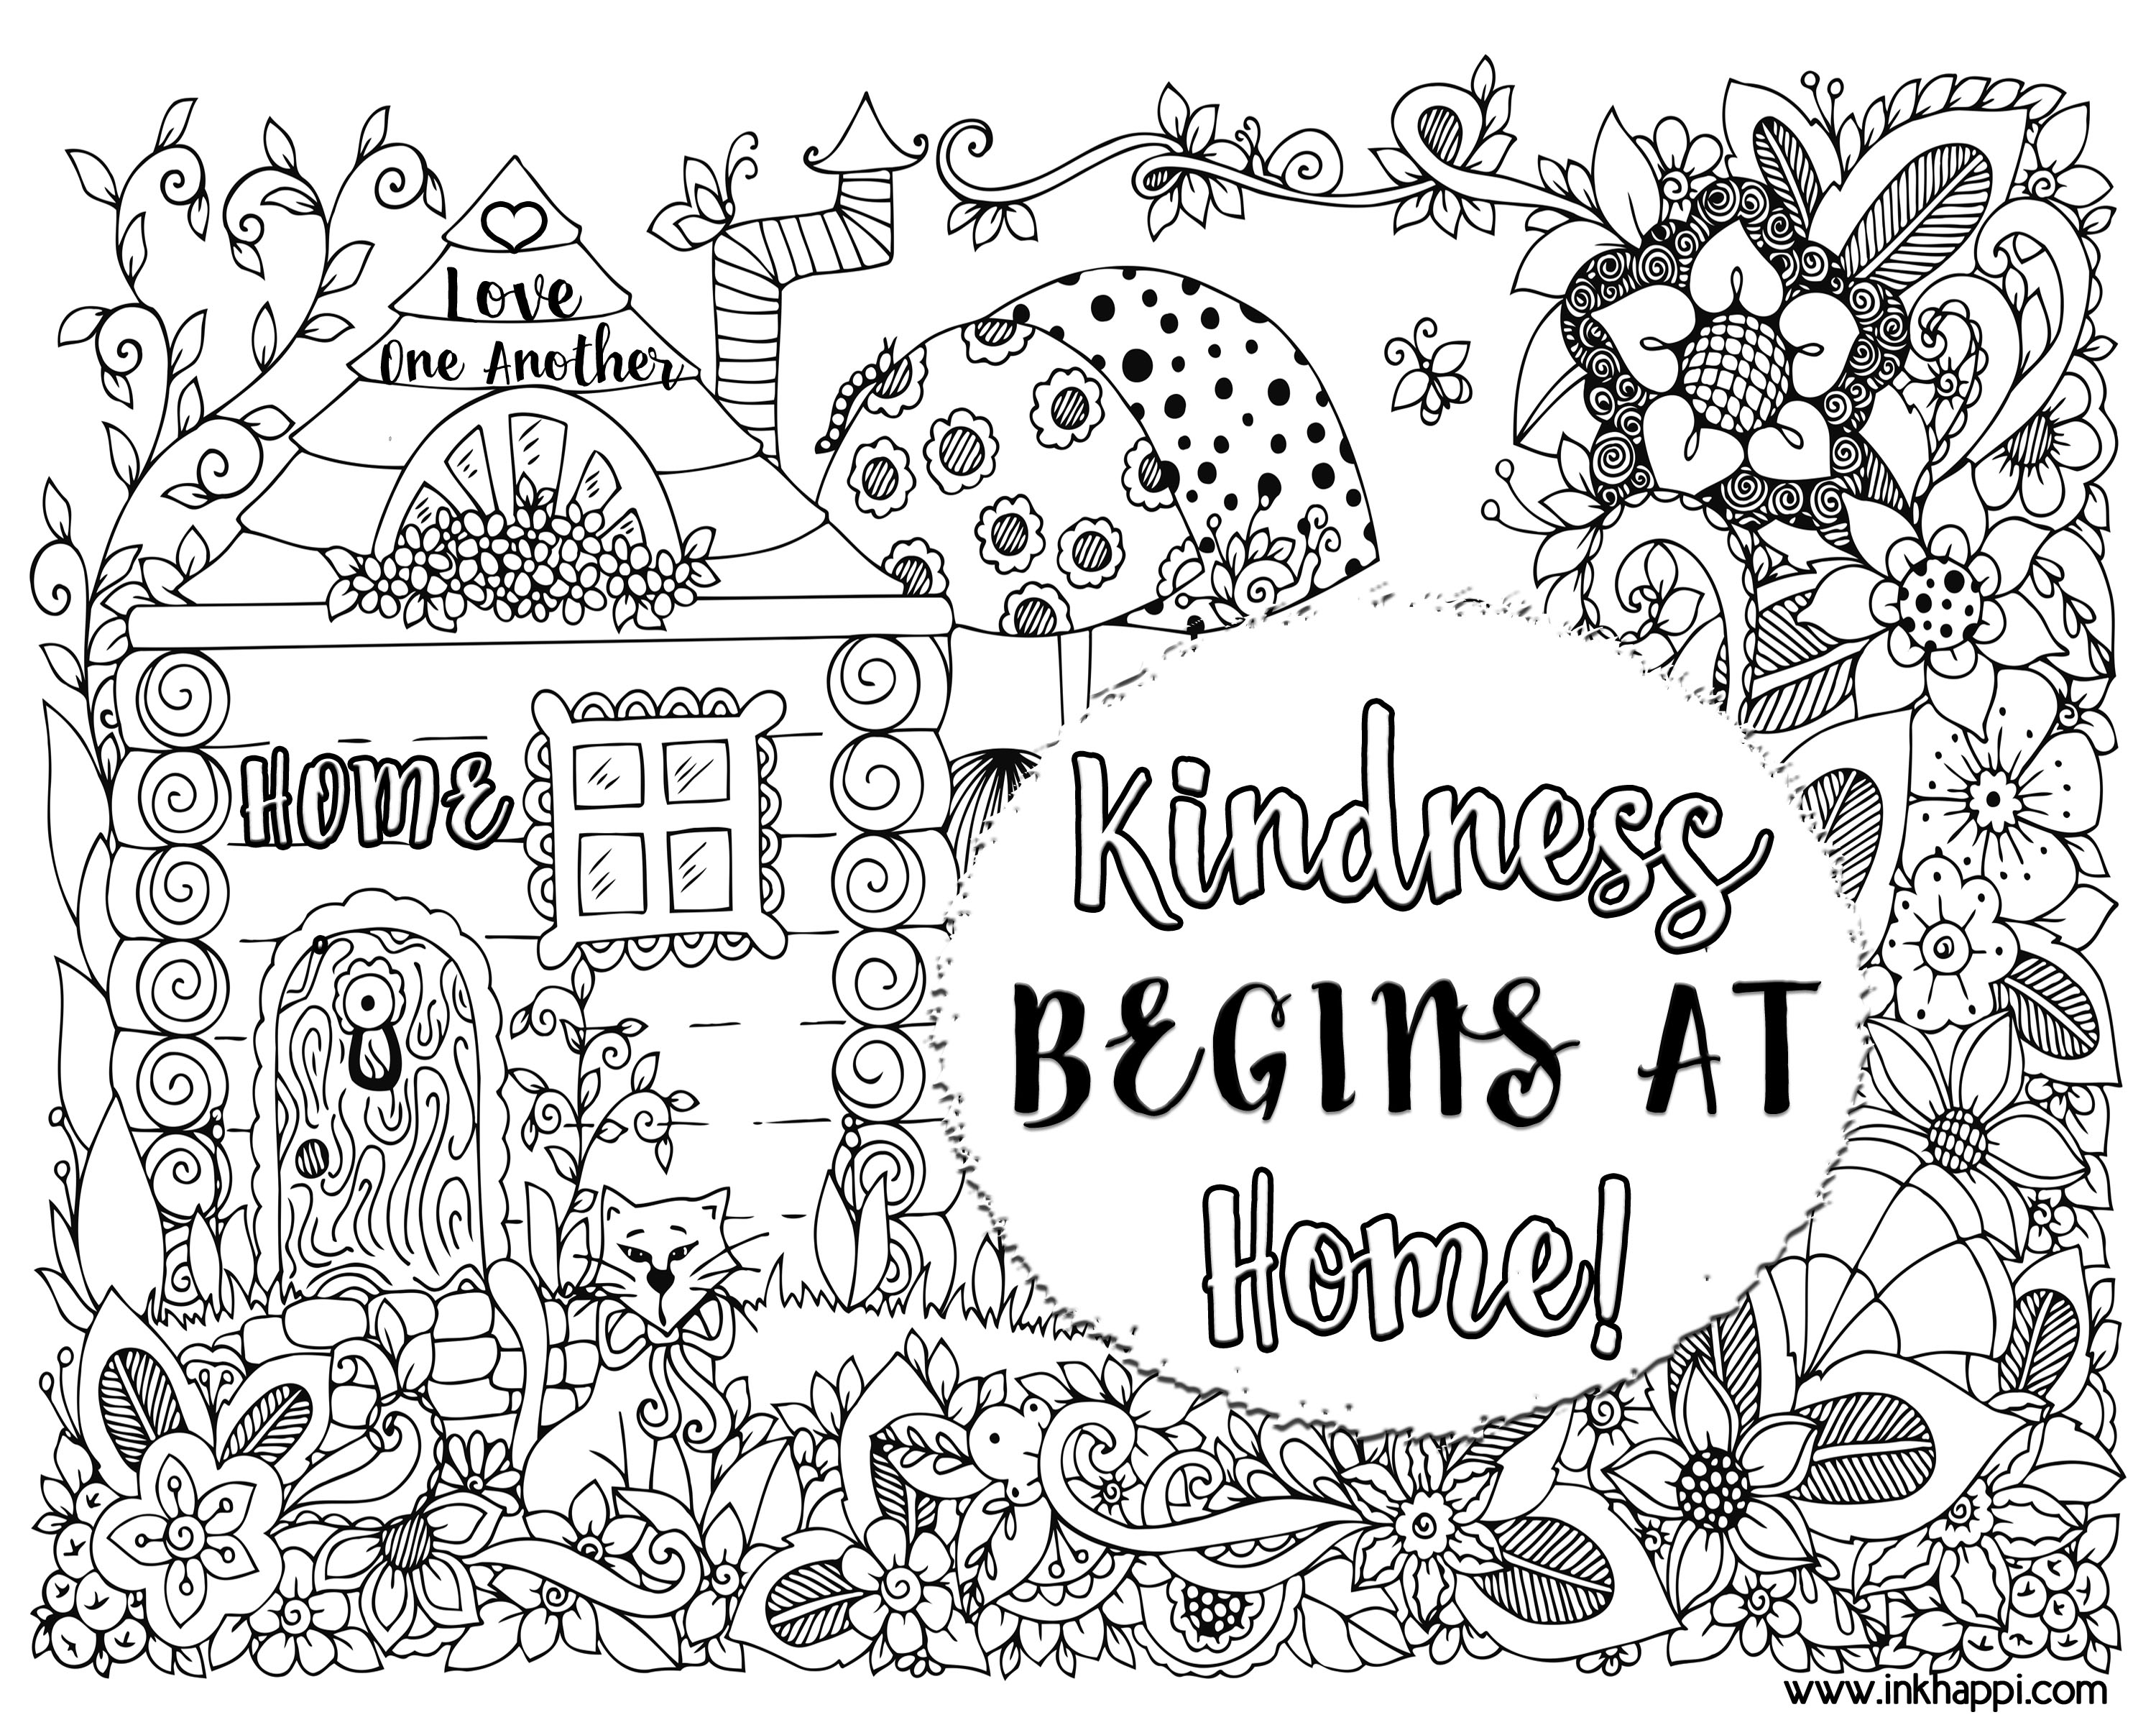 Coloring sheets kindness